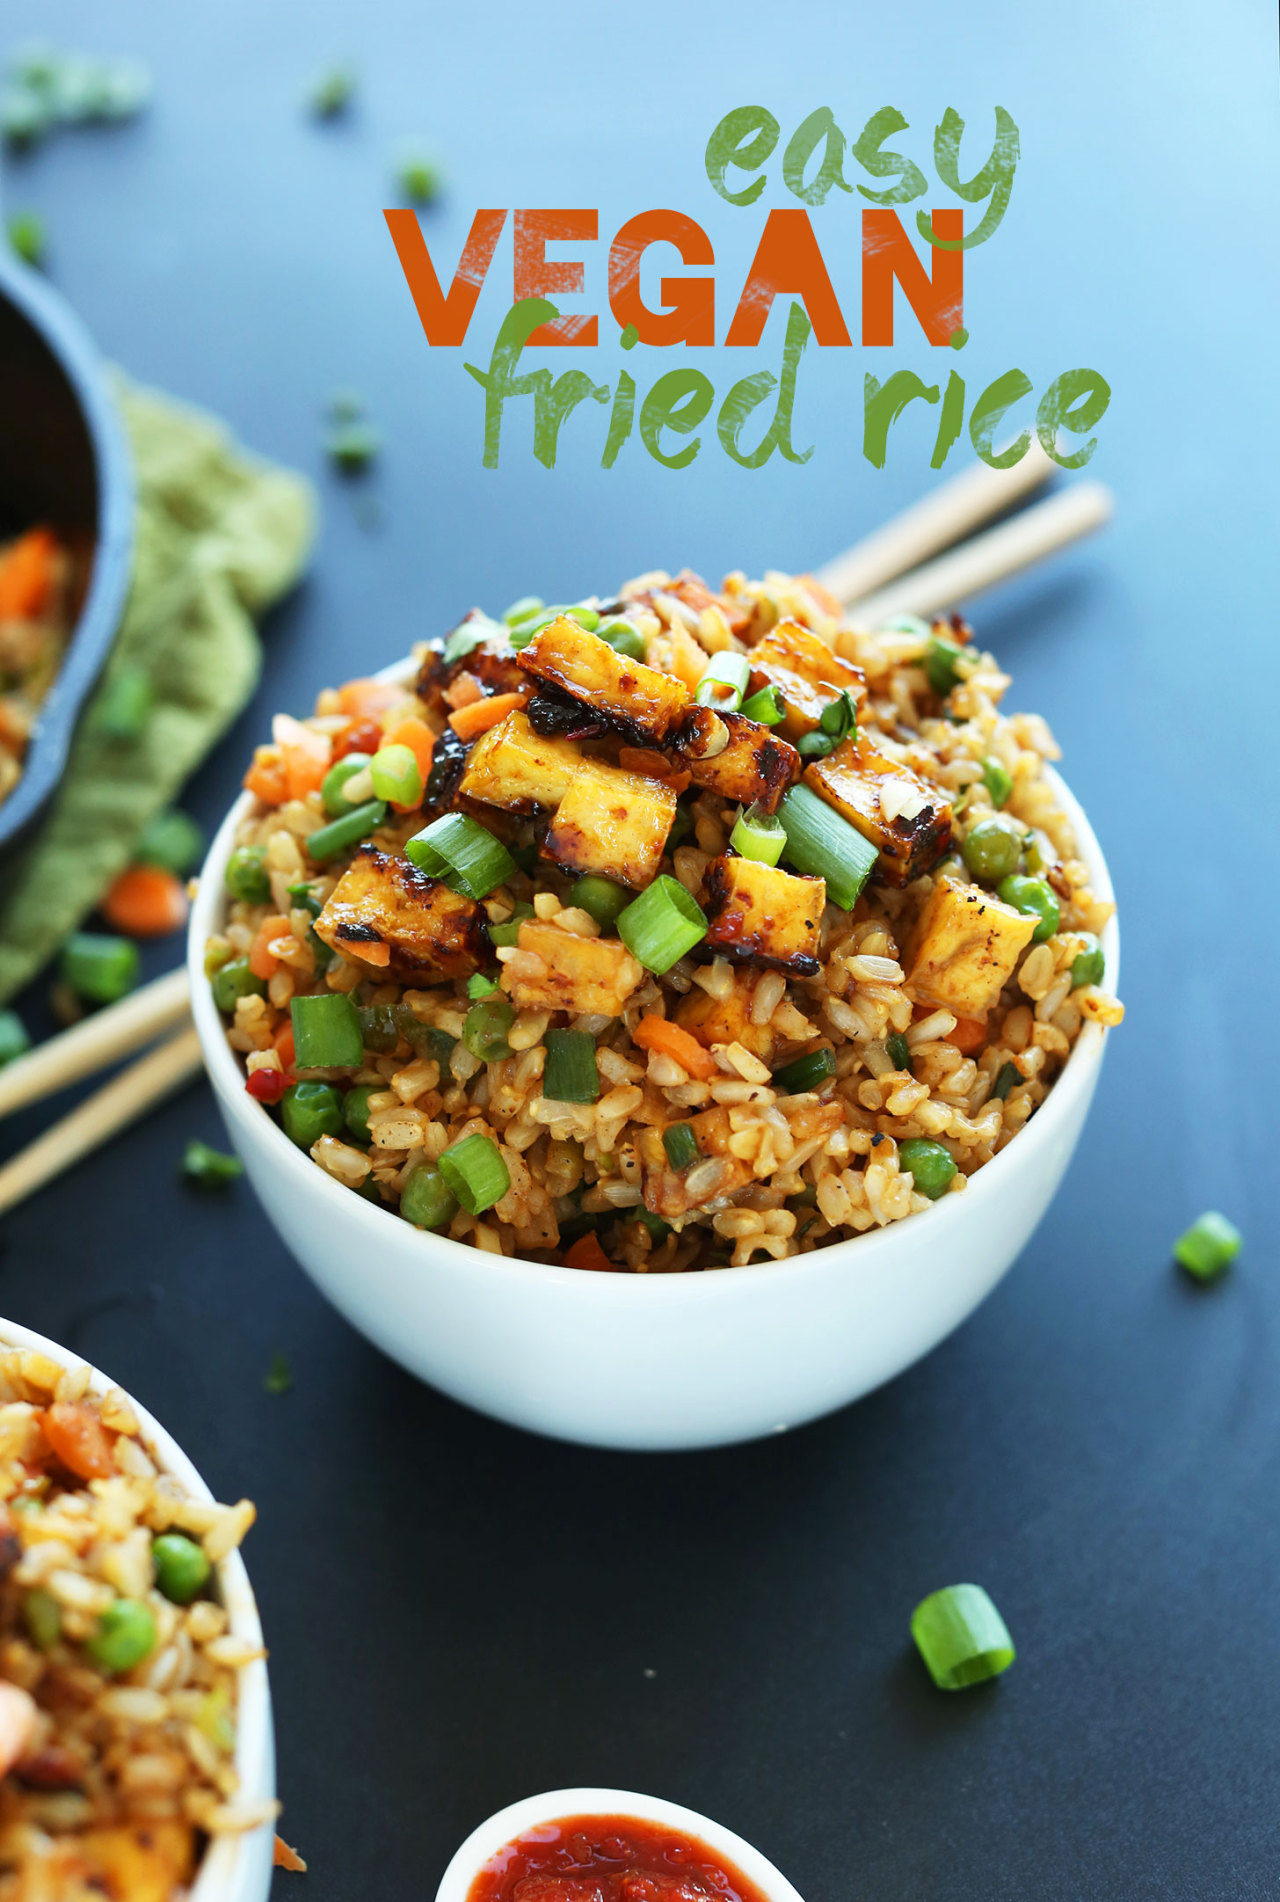 (via Vegan Fried Rice Minimalist Baker Recipes)